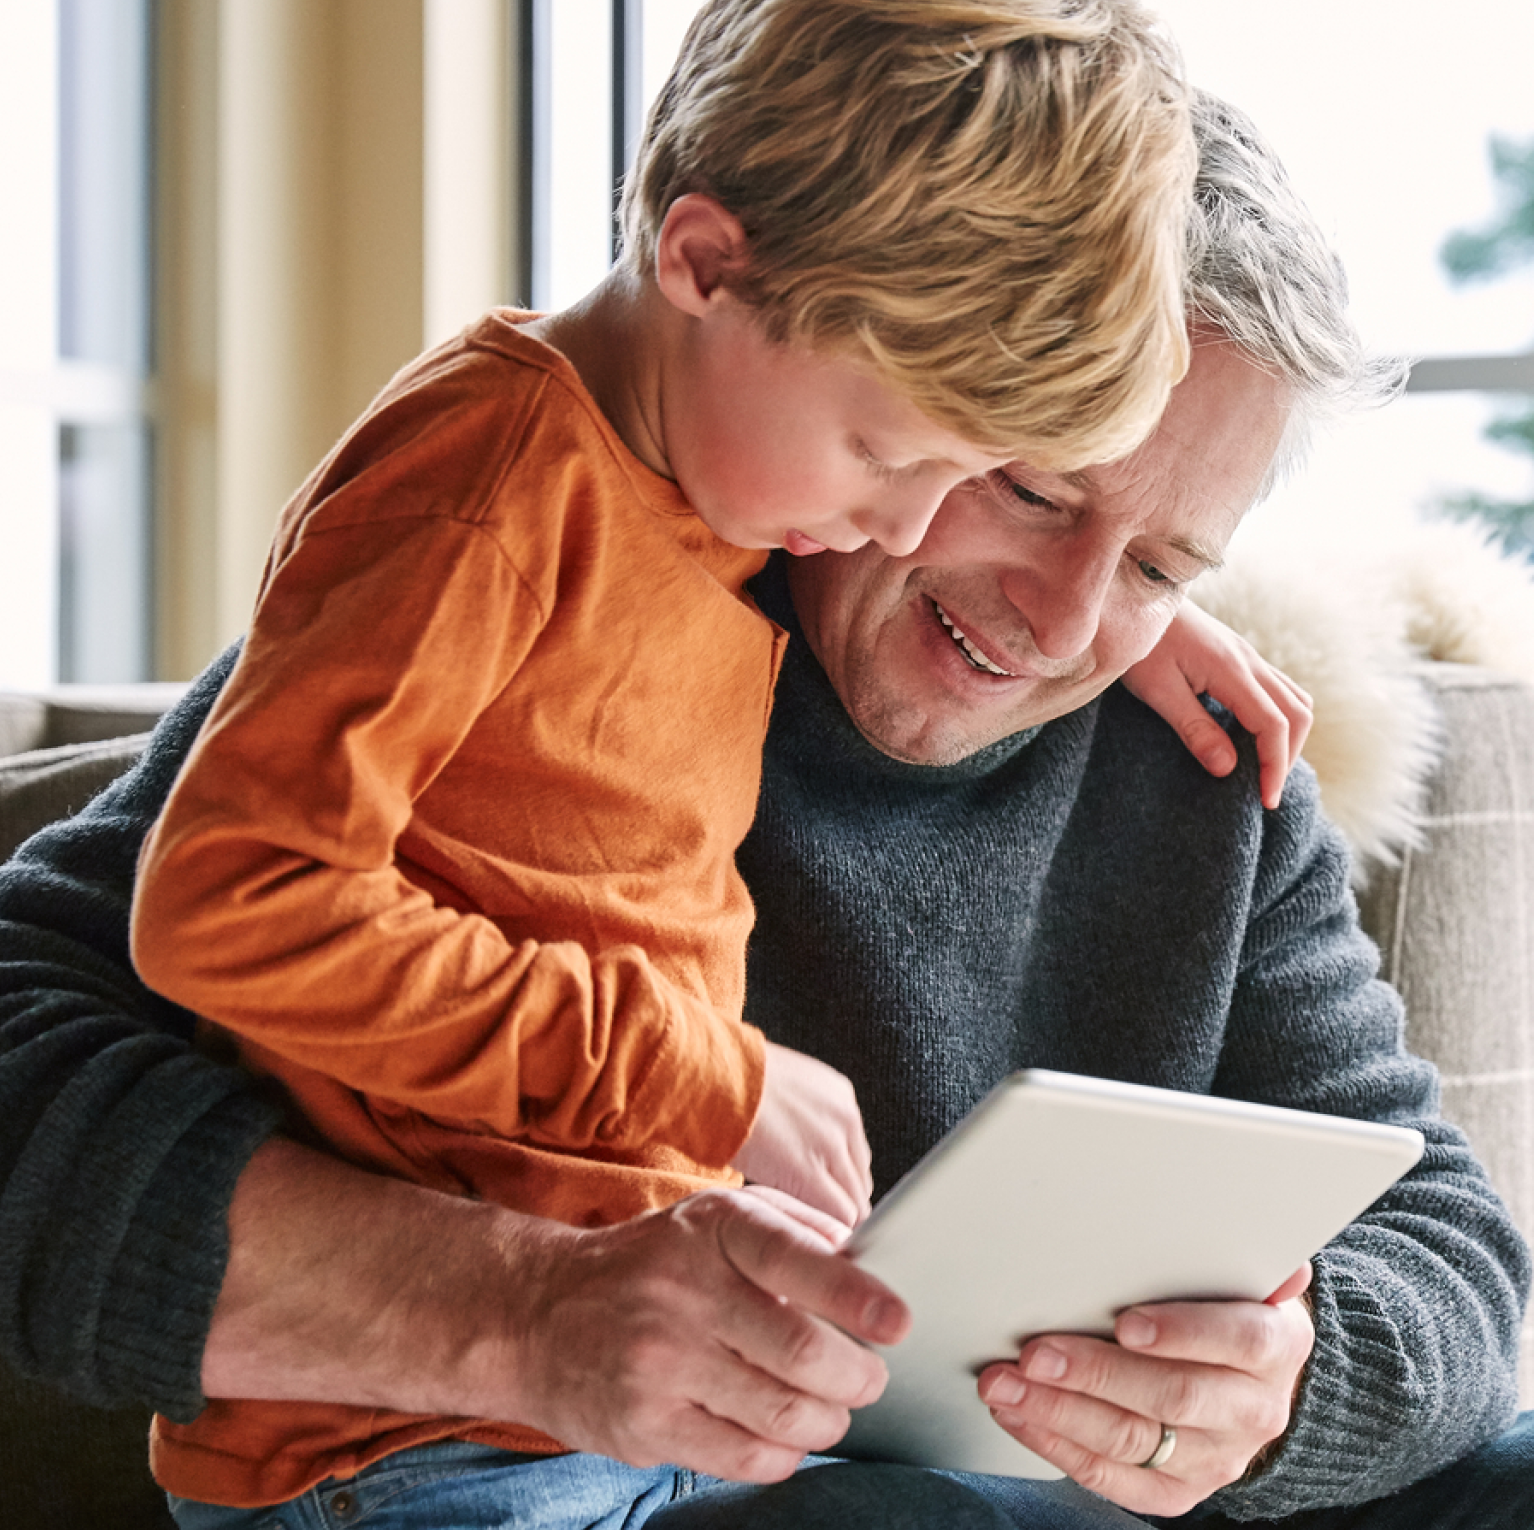 Photo of a man and young boy looking attentively at an iPad